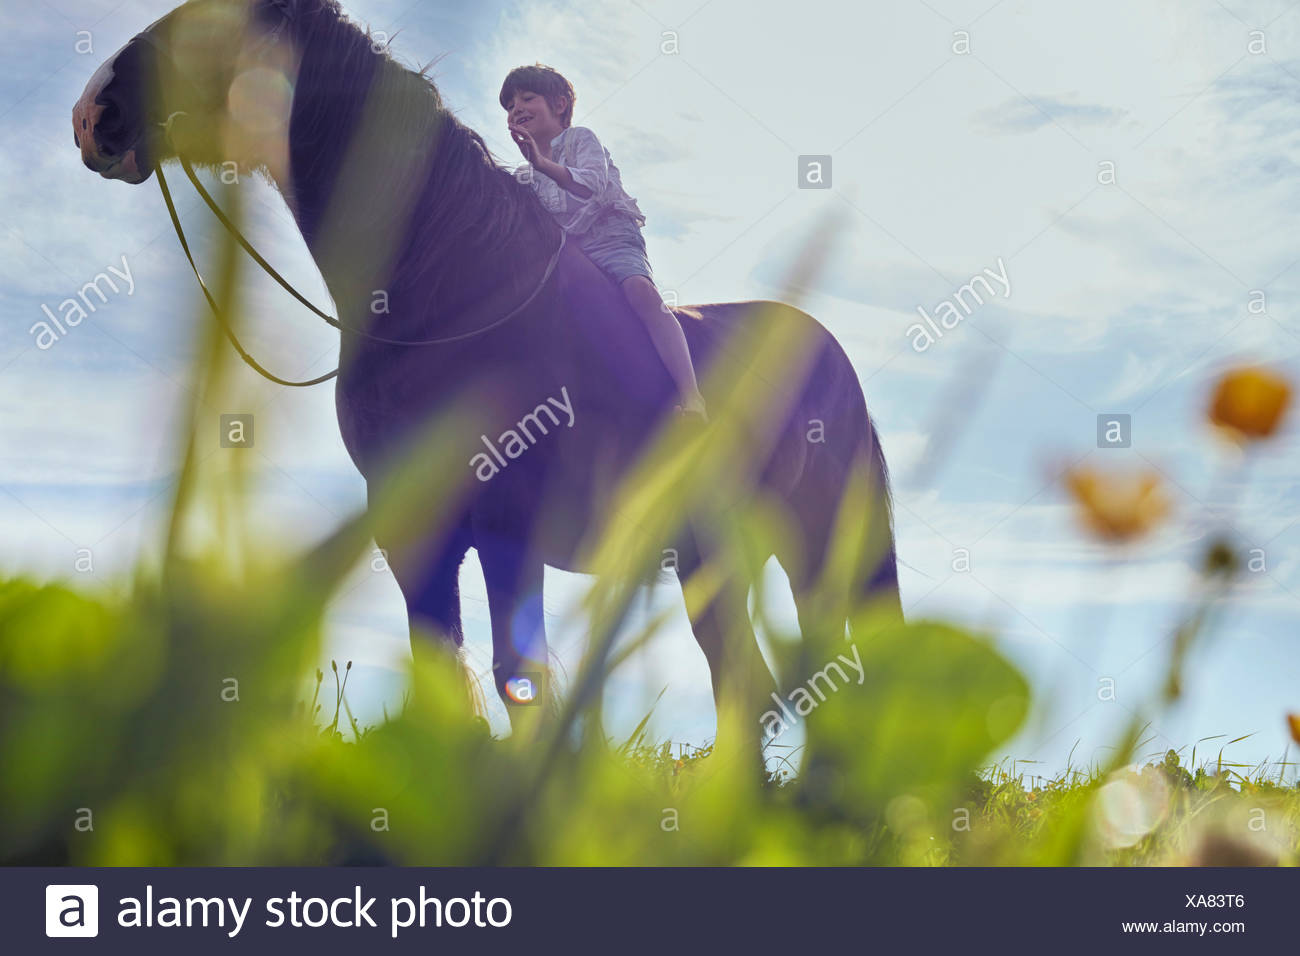 Low angle view of boy on horse - Stock Image